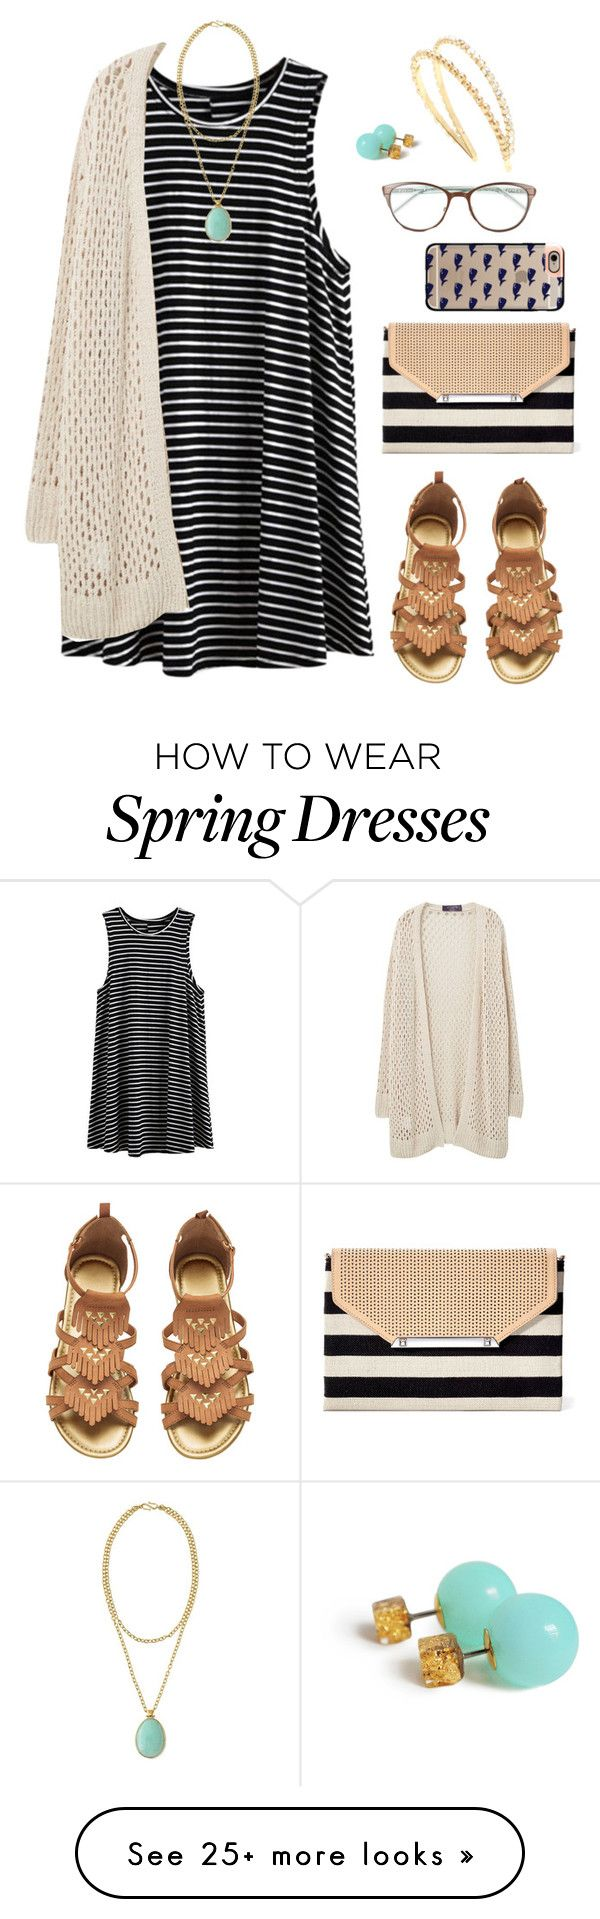 """Easy in spring"" by jrowe1969 on Polyvore featuring Violeta by Mango, Stella & Dot, Casetify, Miu Miu and Kate Spade"